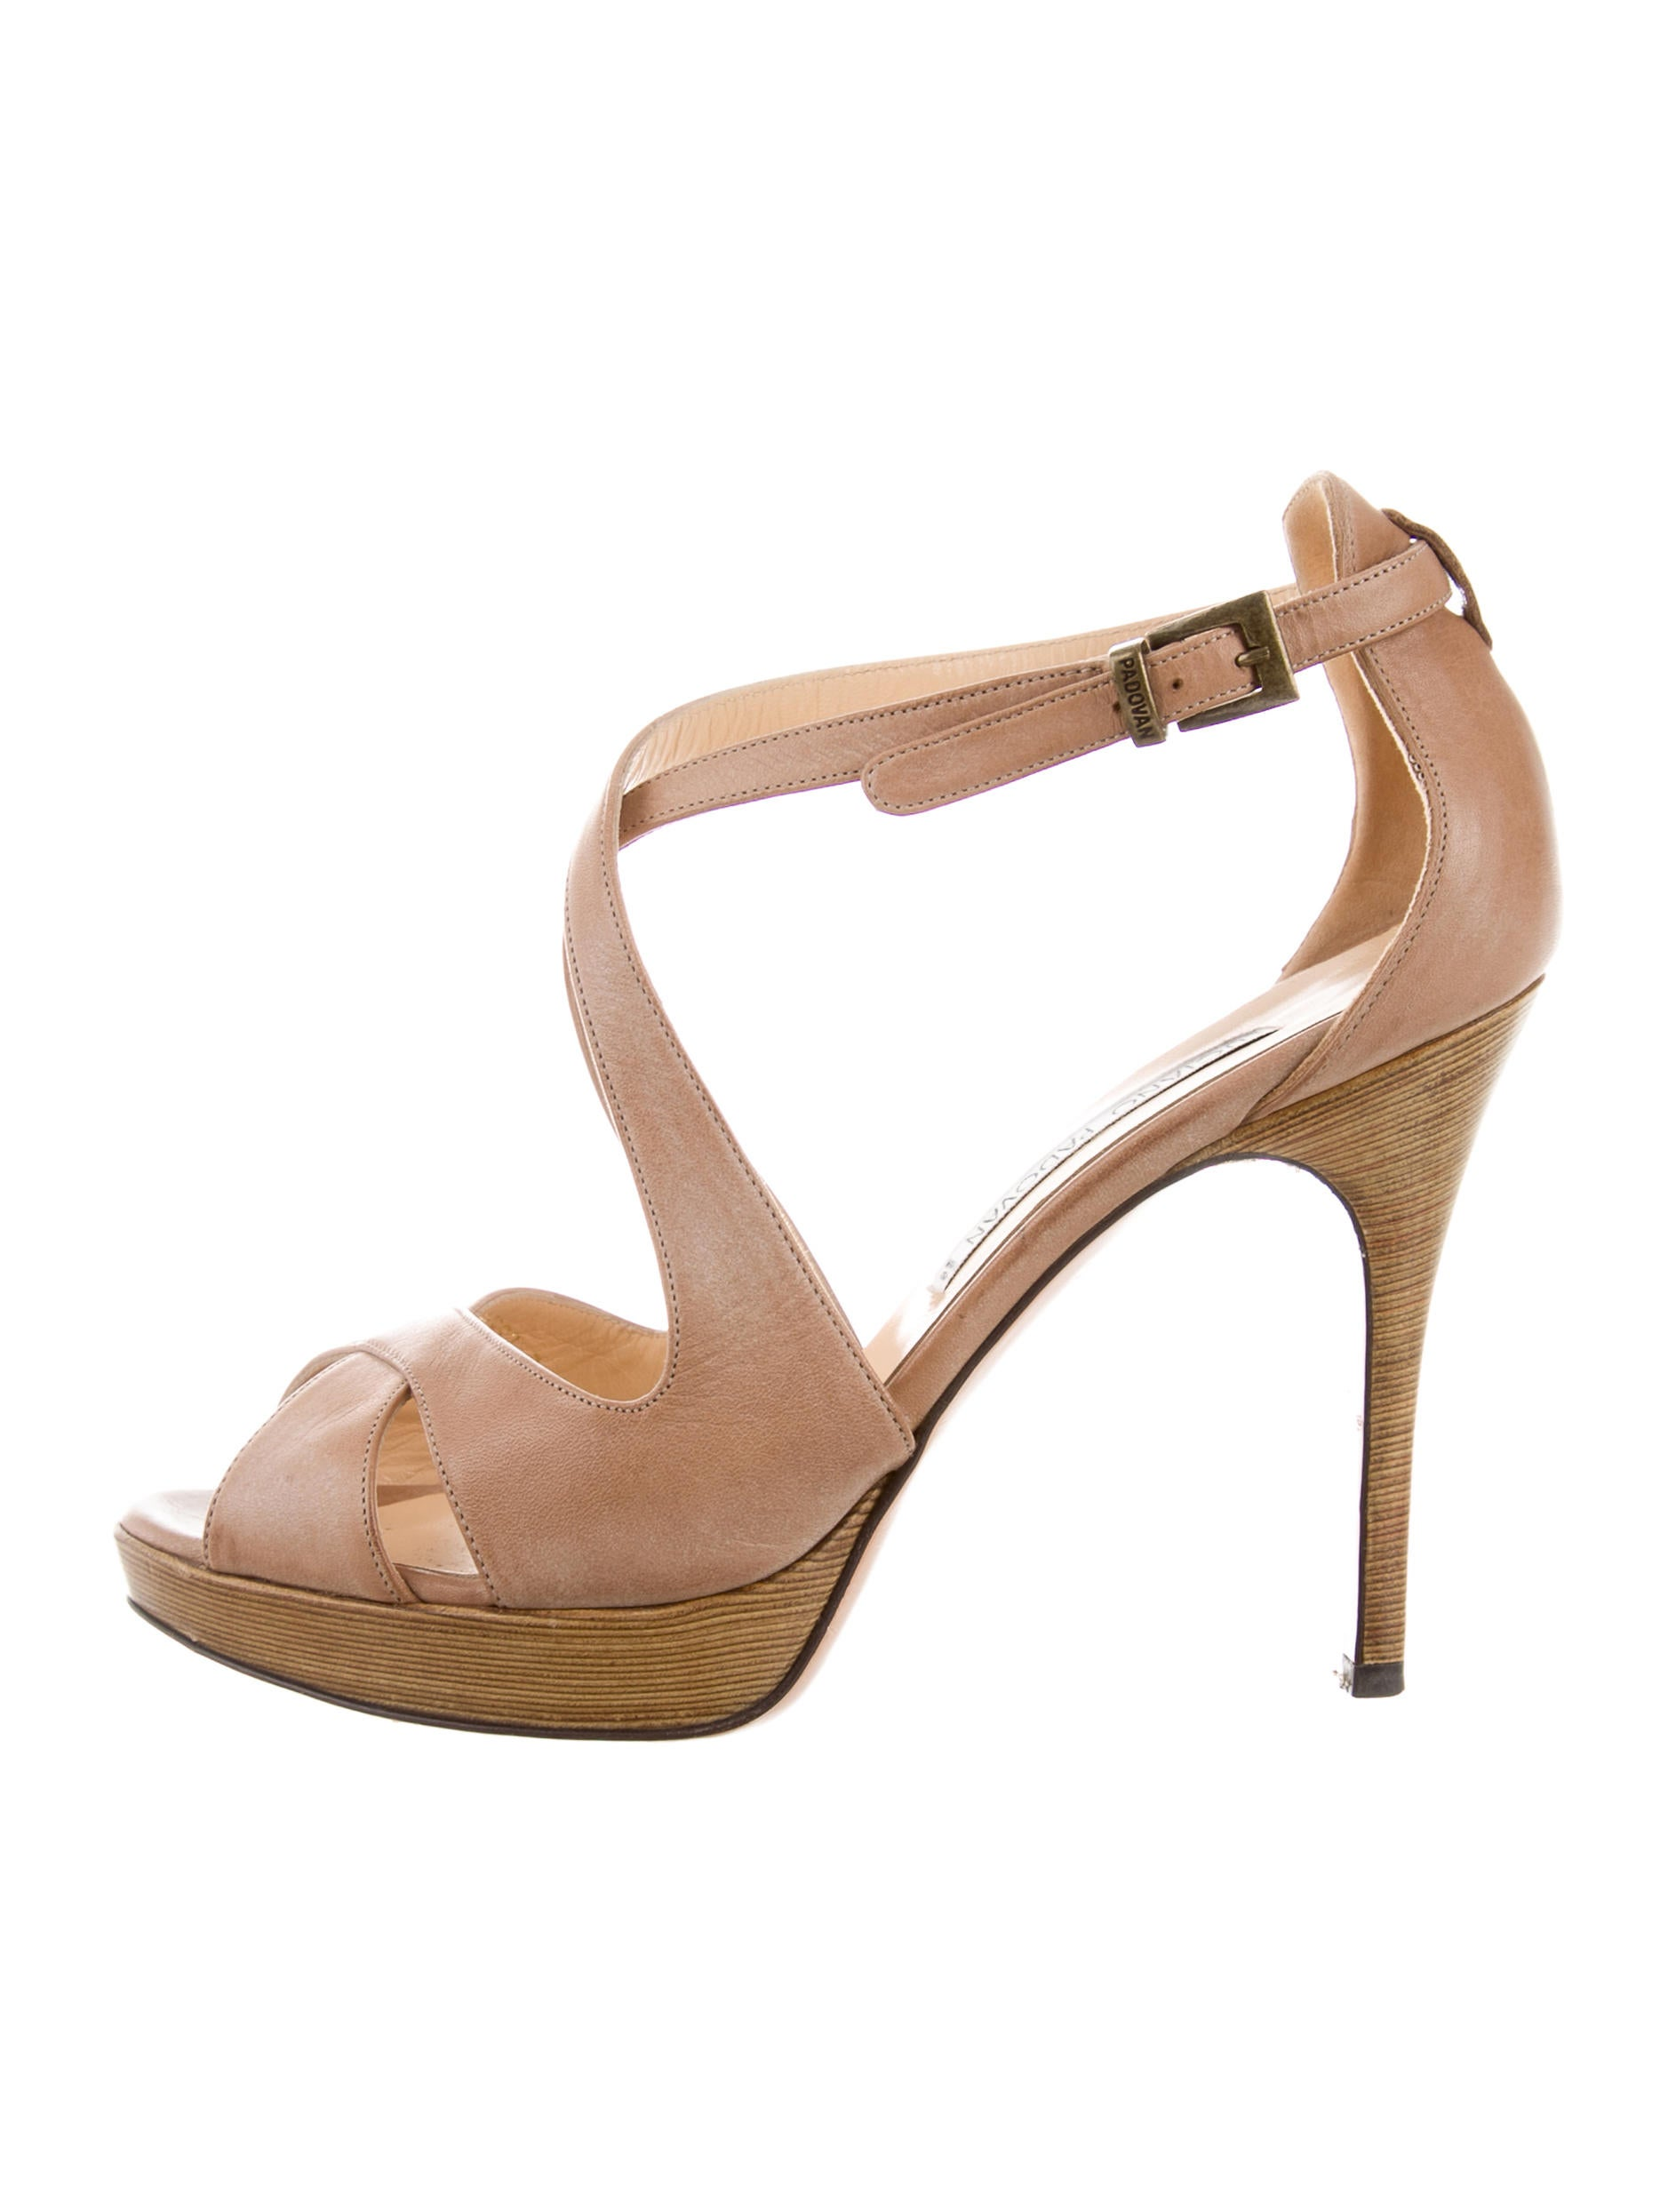 Luciano Padovan Patent Leather Crossover Sandals outlet locations online discount websites 9RDjJe6H7